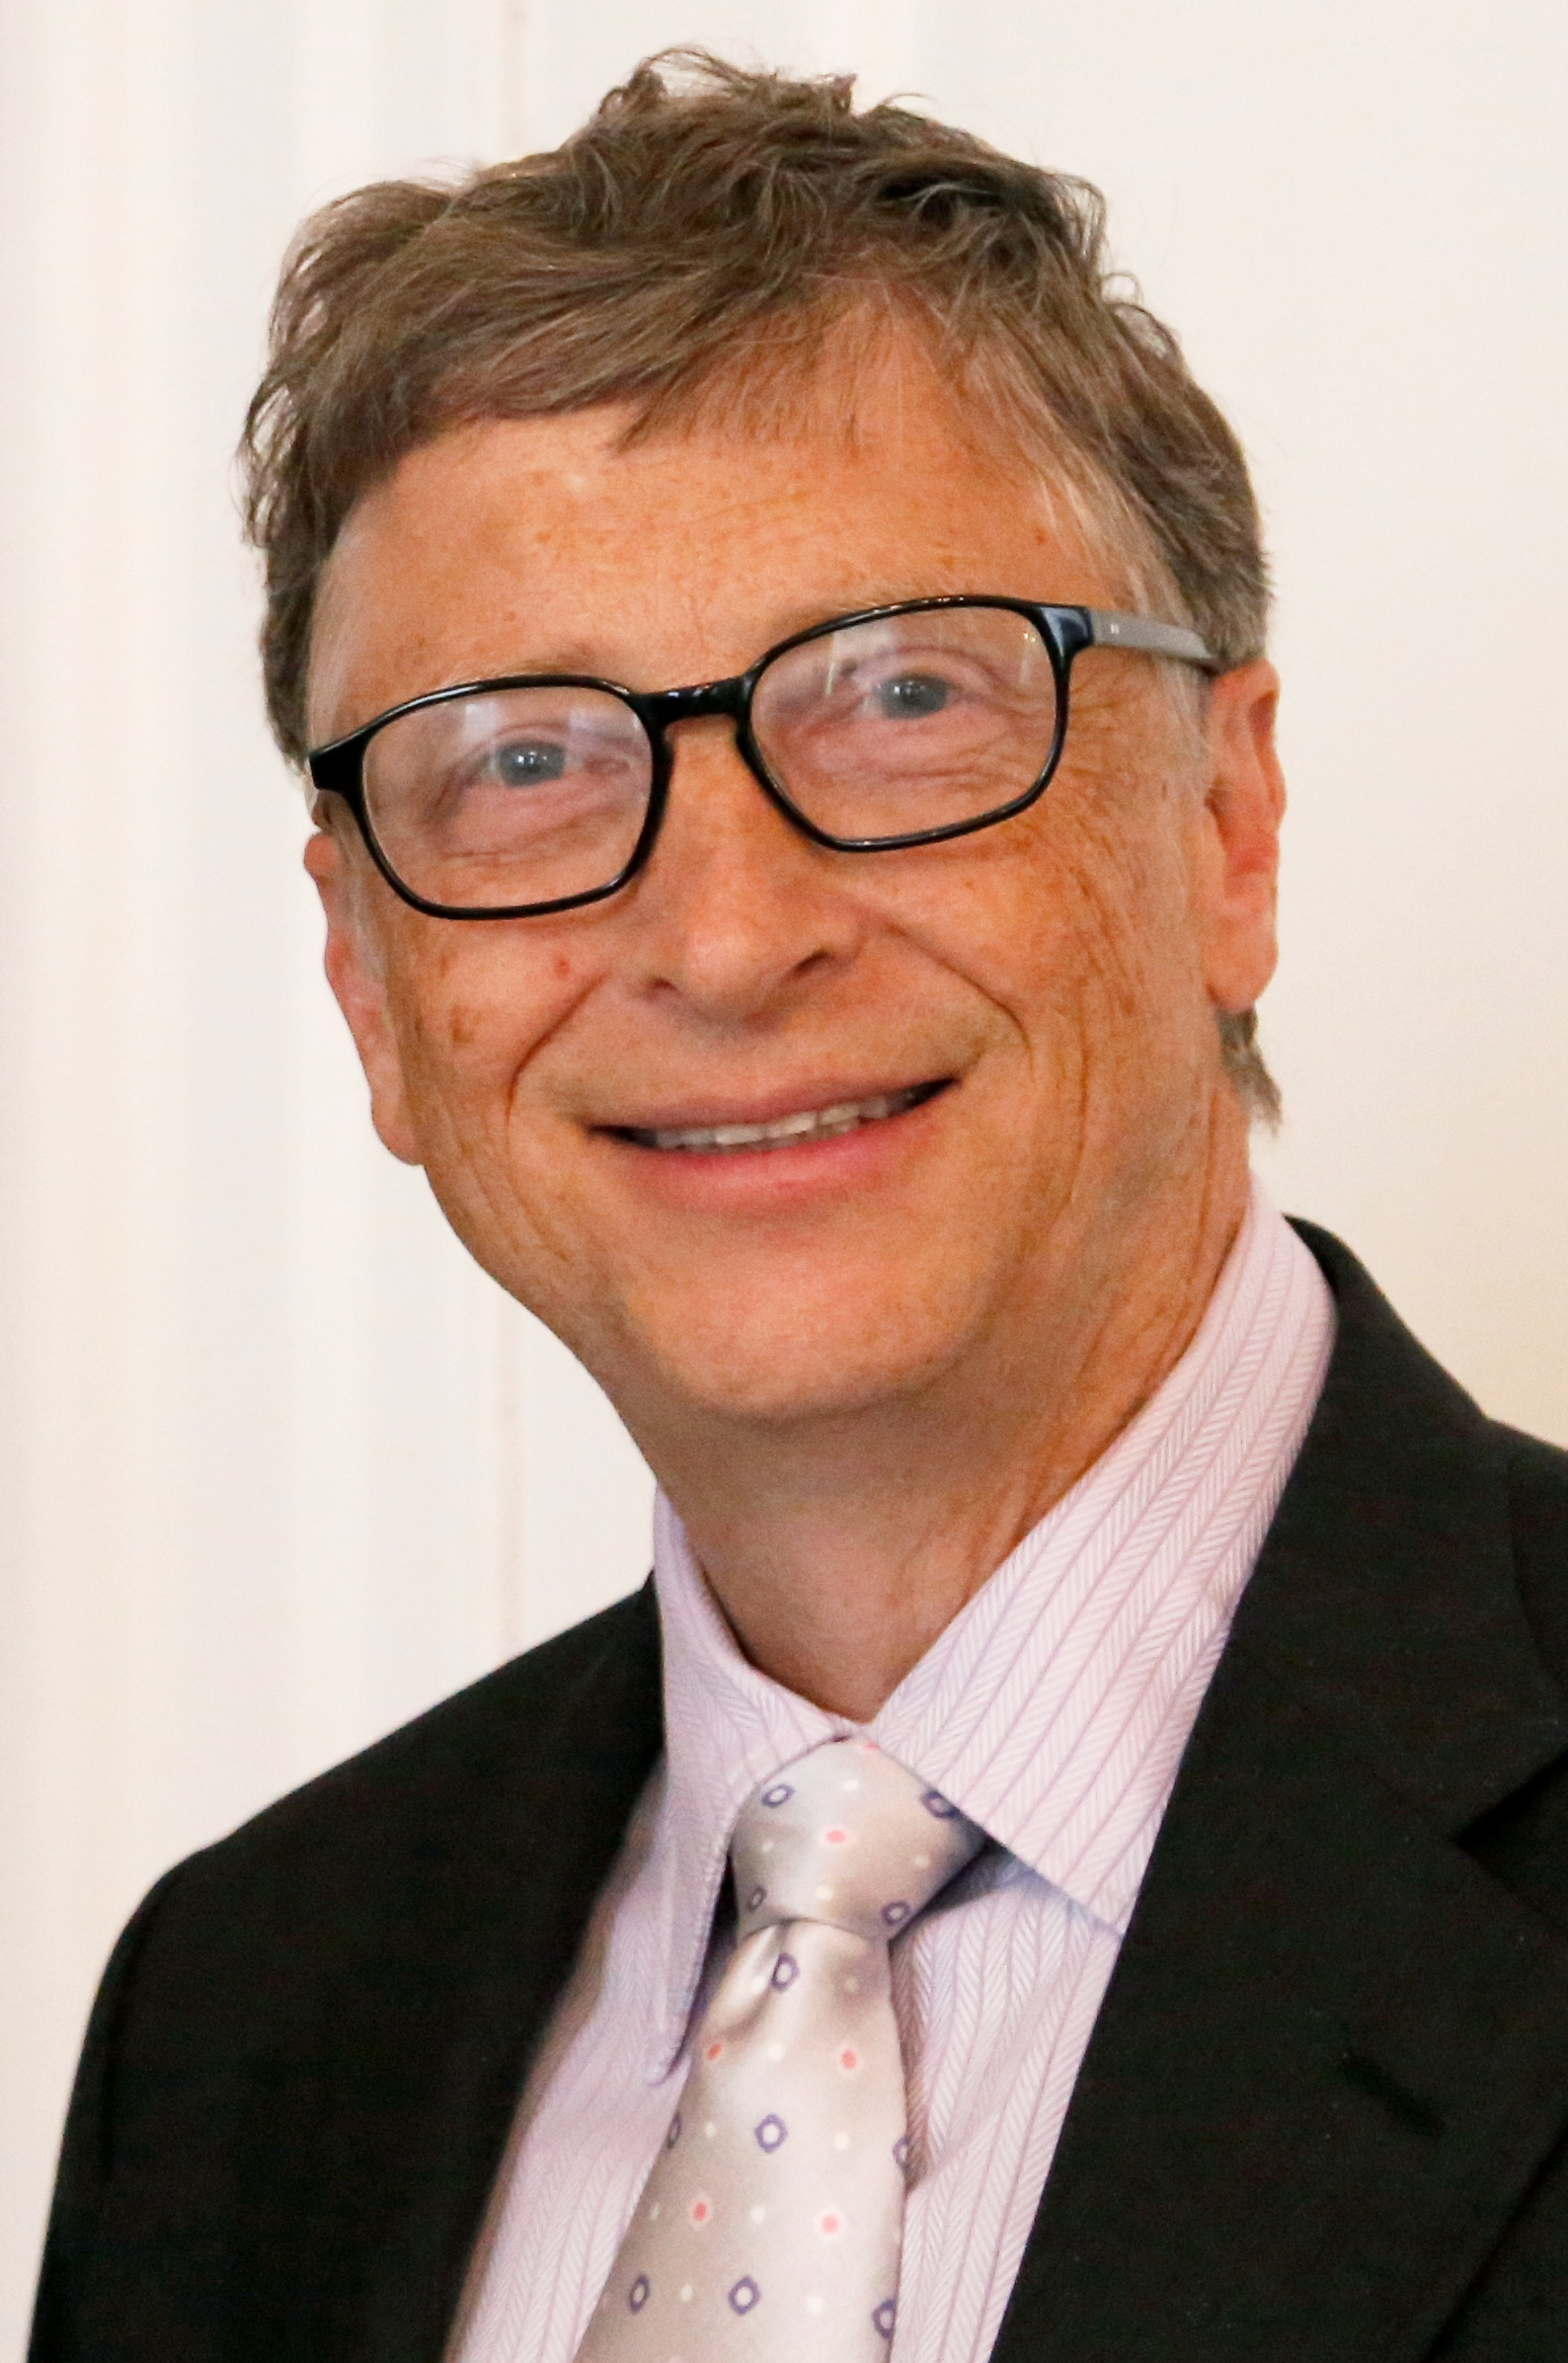 Bill_Gates_July_2014.jpg